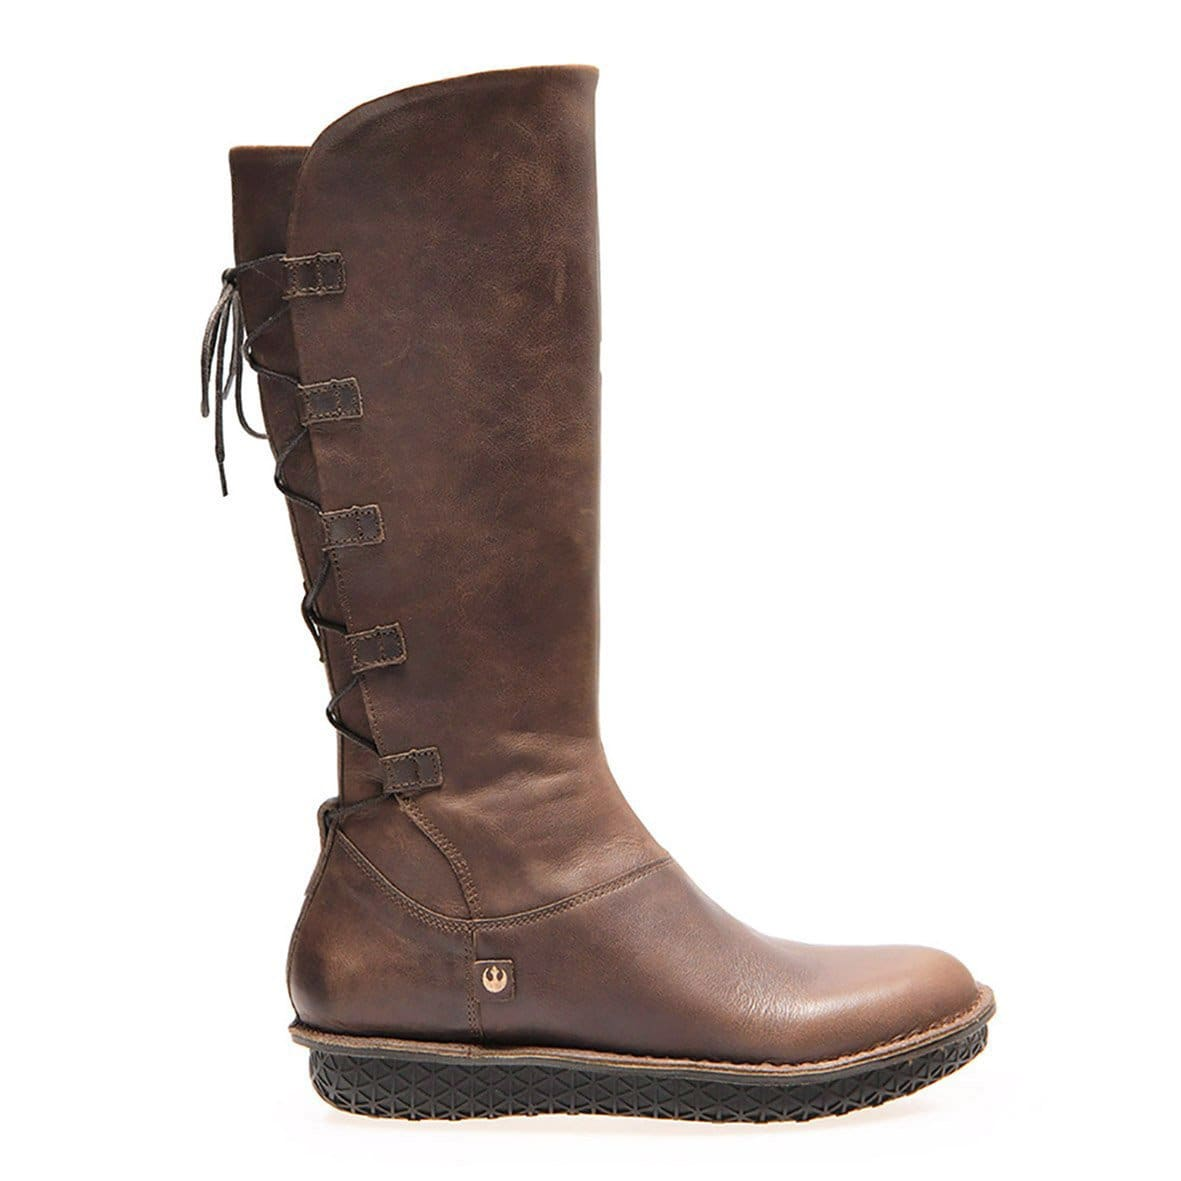 Po-Zu 25% Off Flash Sale until 12am GMT (1pm EST) including all Star Wars Boots! Free World Shipping! Rey's Hi-Boots from The Last Jedi $168 gpb ($223)